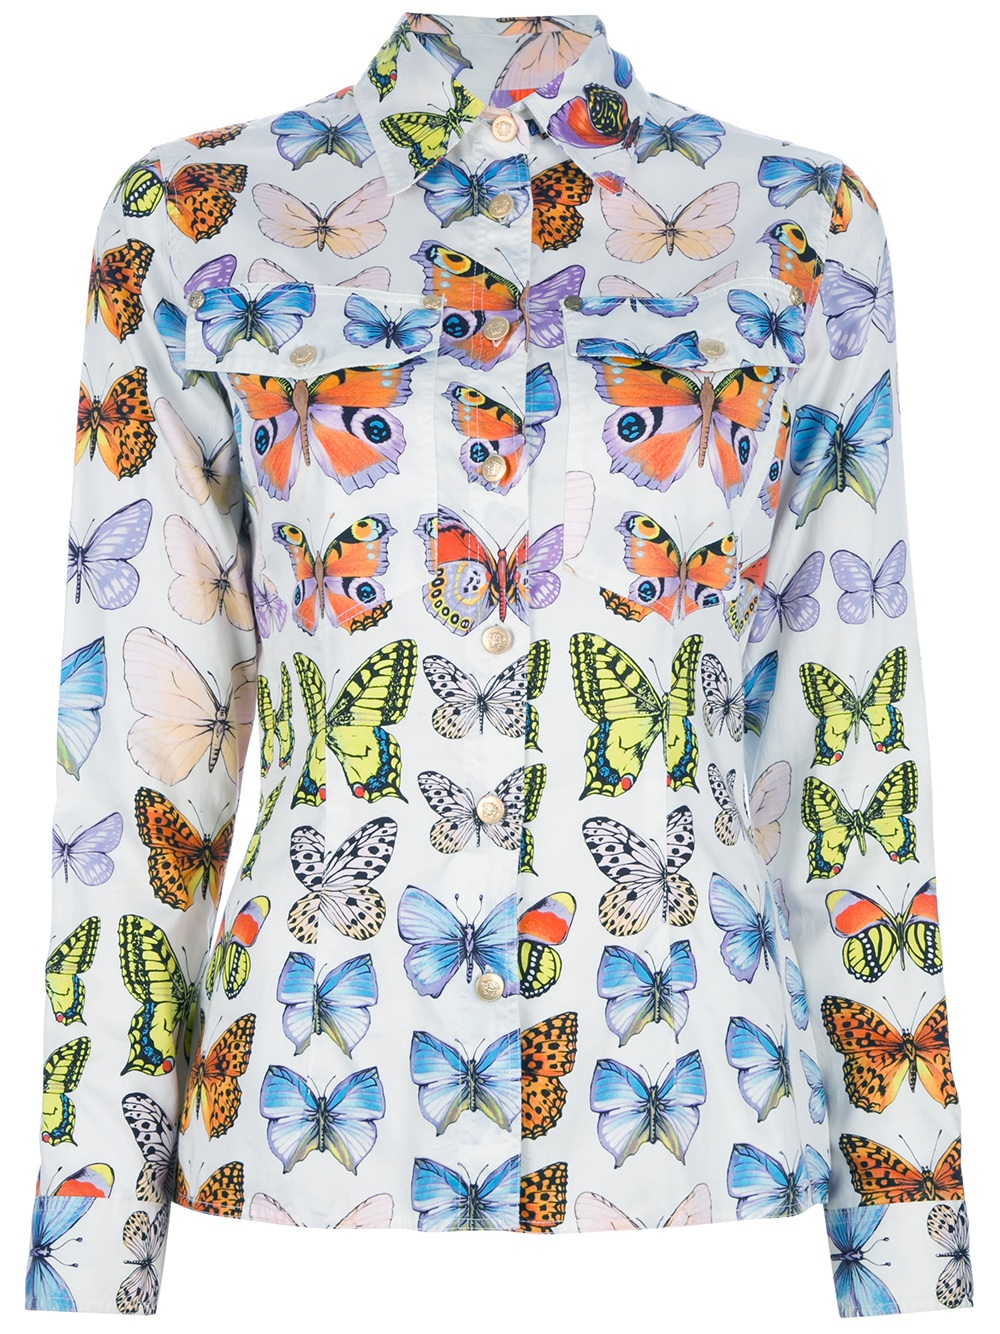 Versace Vintage Butterfly Print Shirt in WhiteVintage Butterfly Print